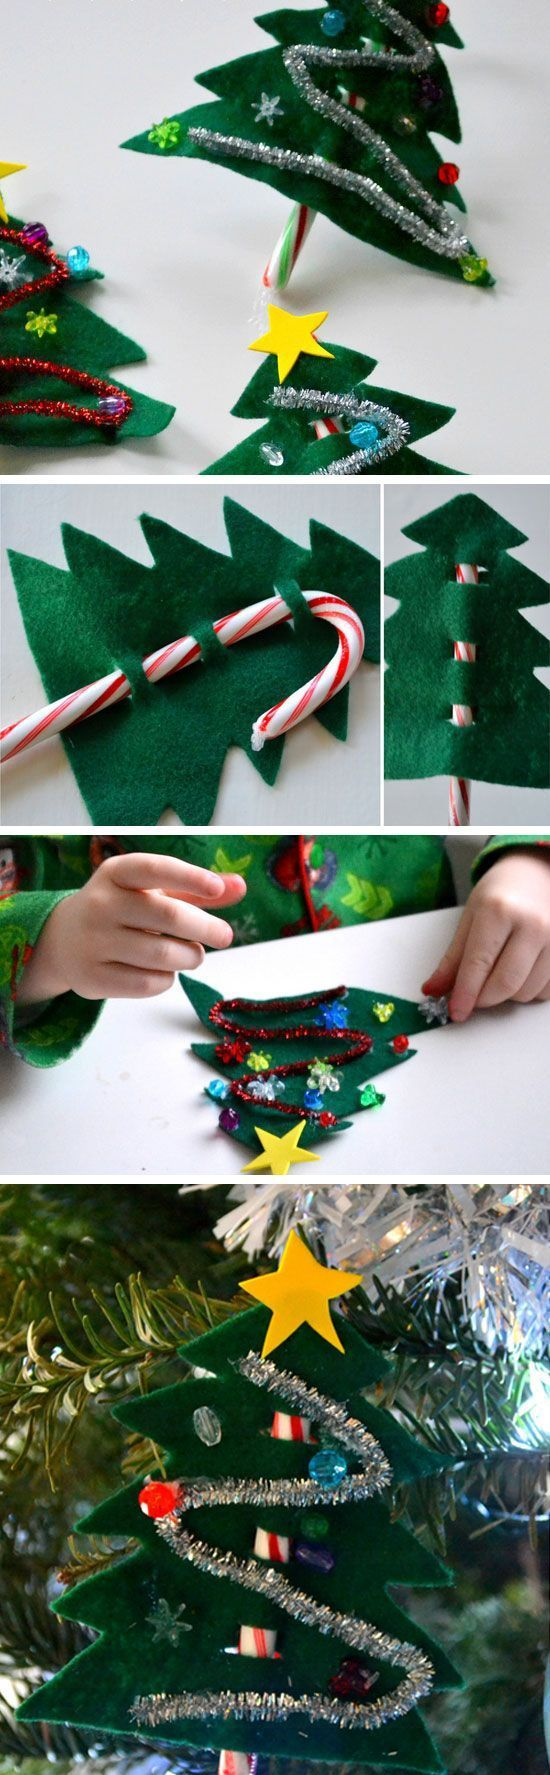 Candy Cane Christmas Trees   30+ DIY Christmas Crafts for Kids to Make